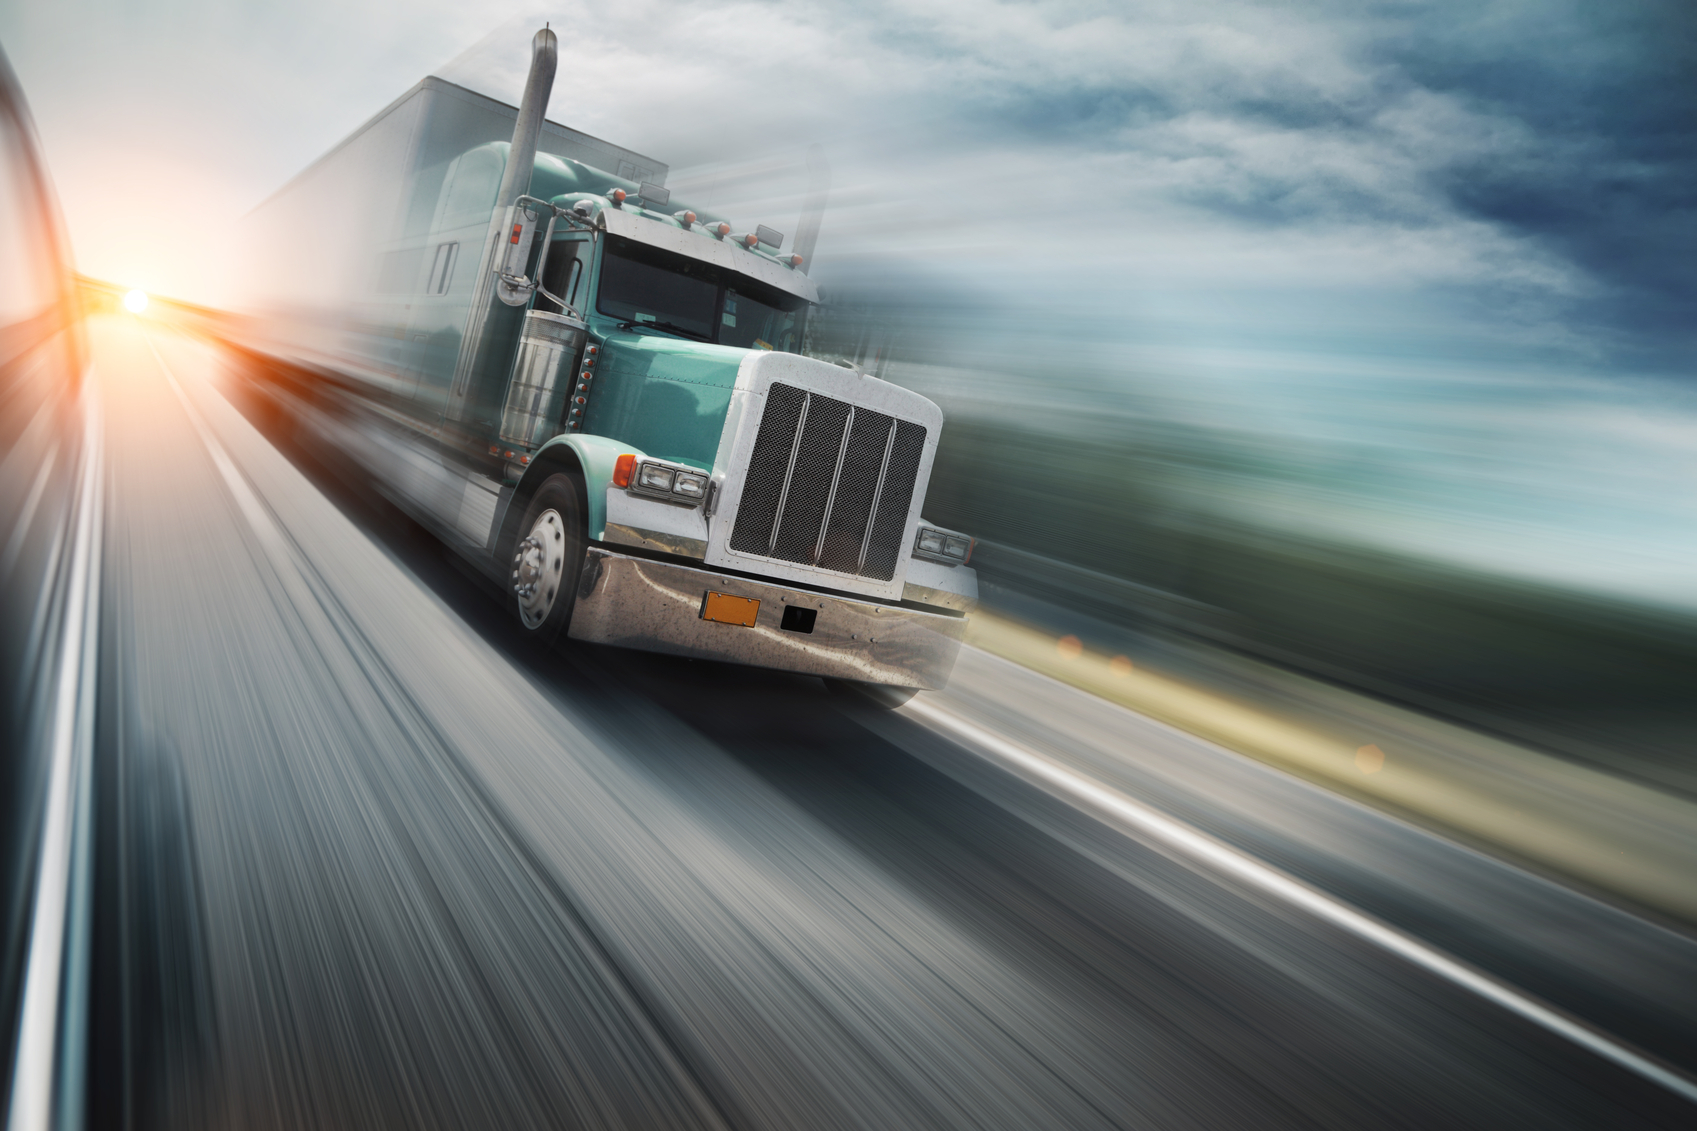 The DOT says speed limiting devices on heavy vehicles could save lives and save an estimated $1 billion in fuel costs each year.